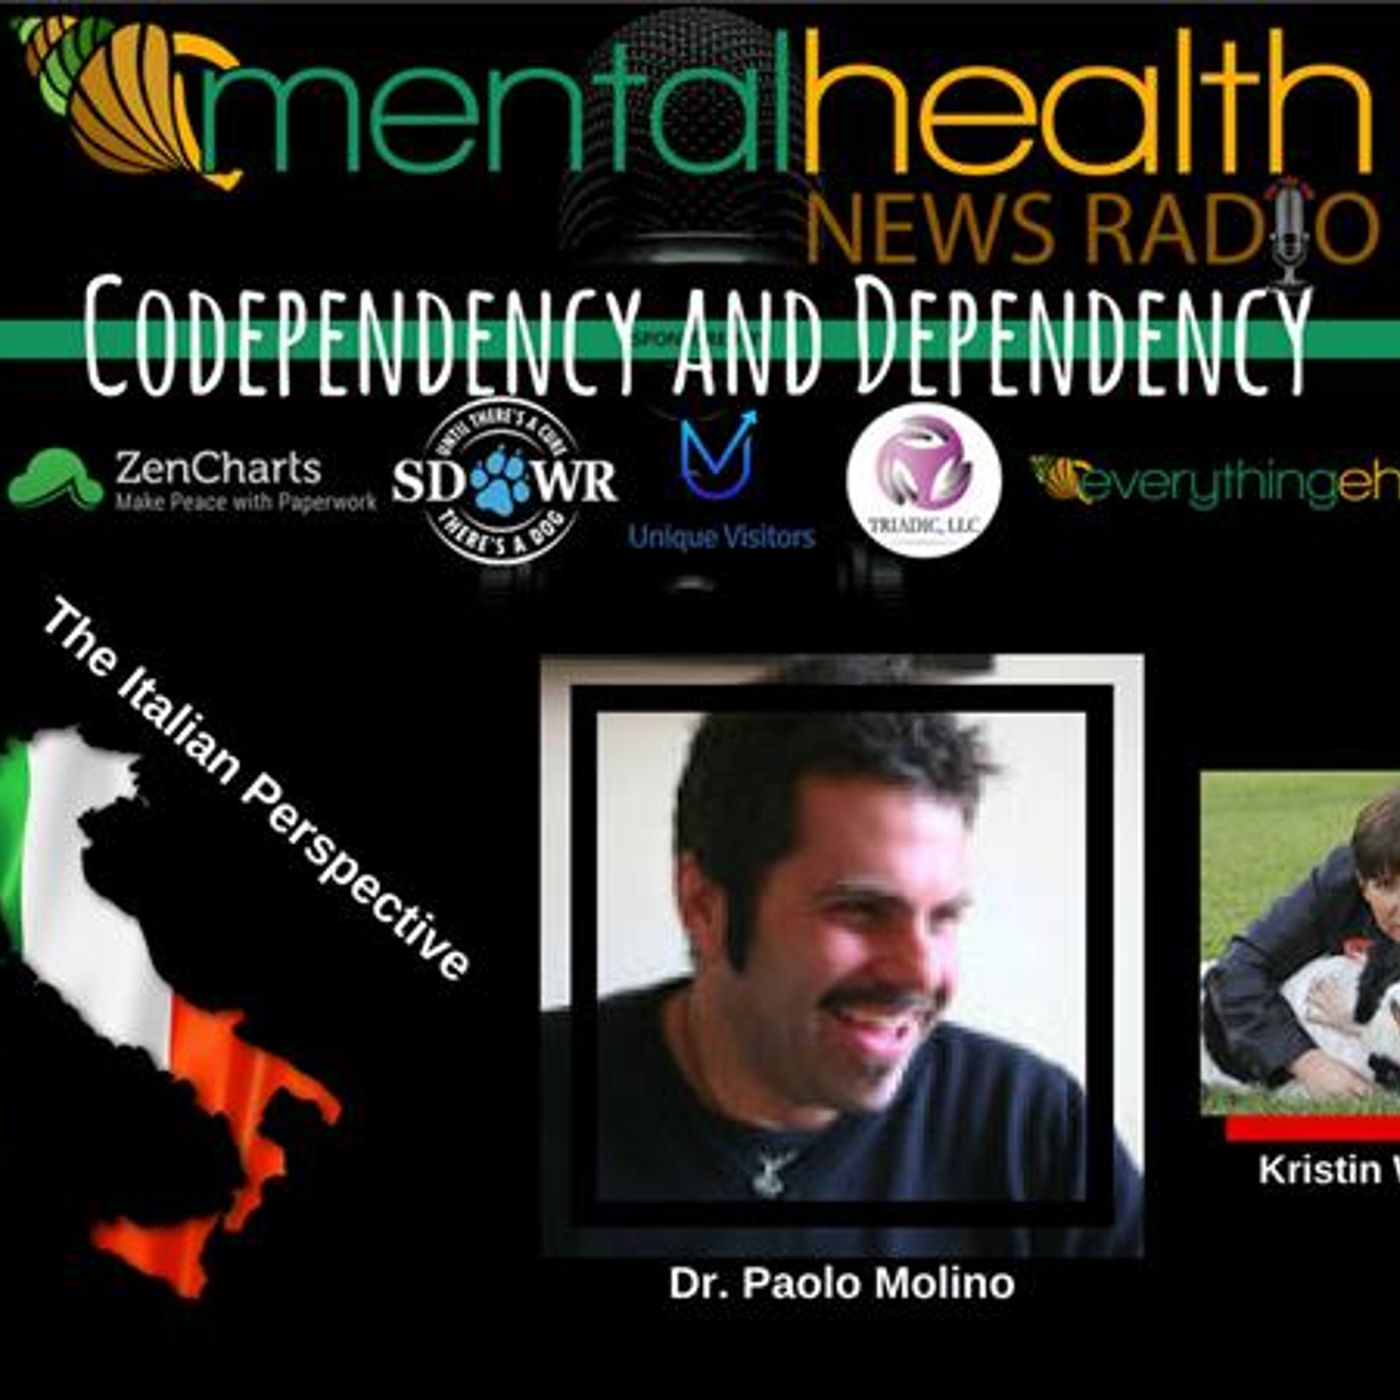 Mental Health News Radio - The Italian Perspective: Codependency and Dependency with Dr. Paolo Molino